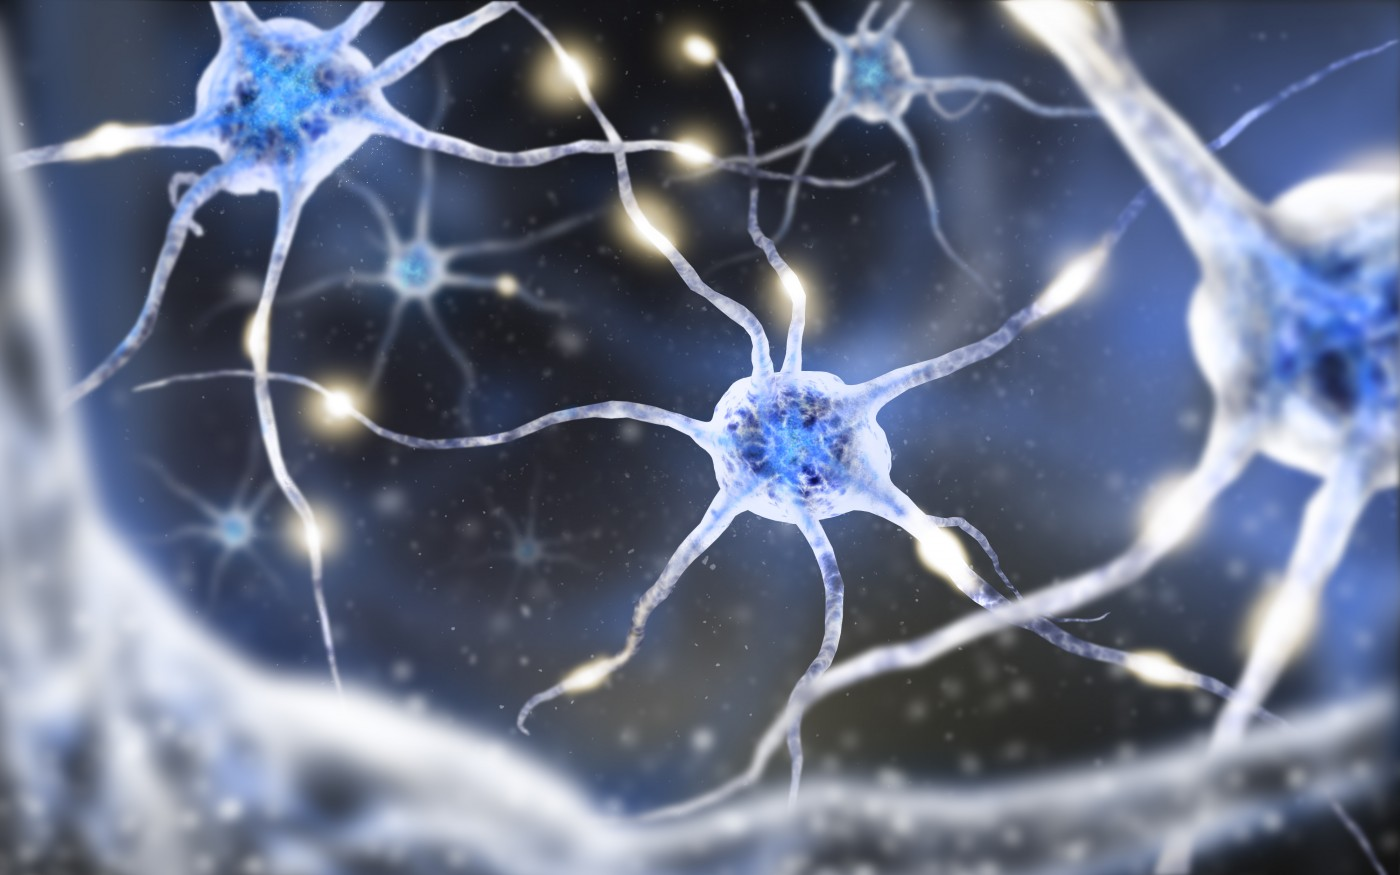 New Brain Cell Interaction Study Technique Could Impact MS Research